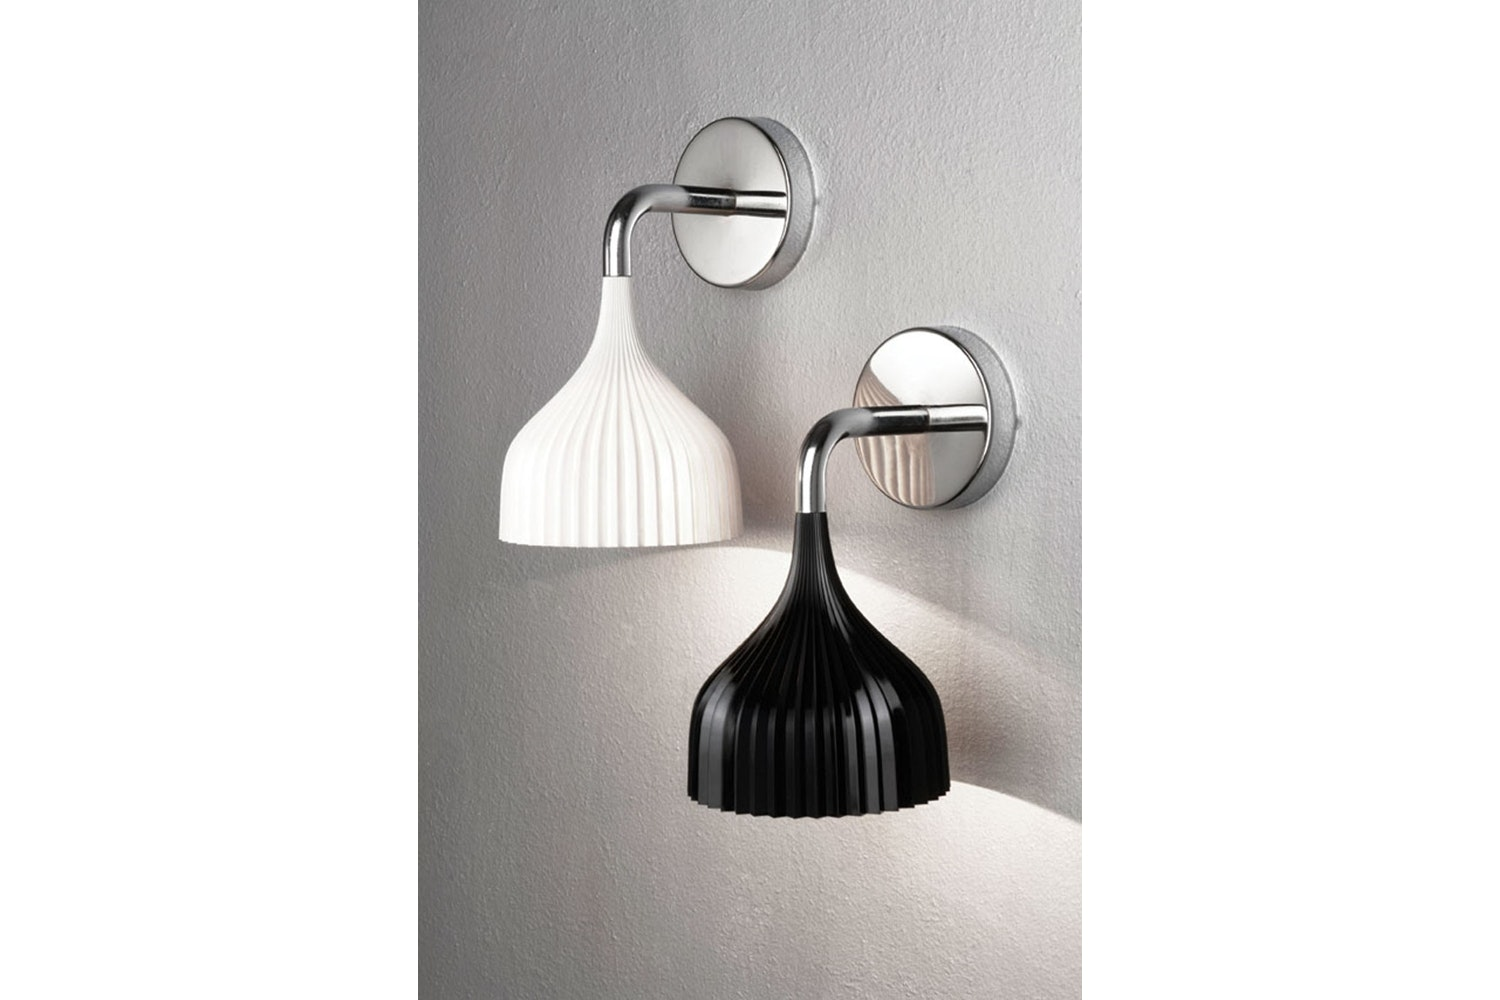 E Wall Lamp Wall Lamp by Ferruccio Laviani for Kartell